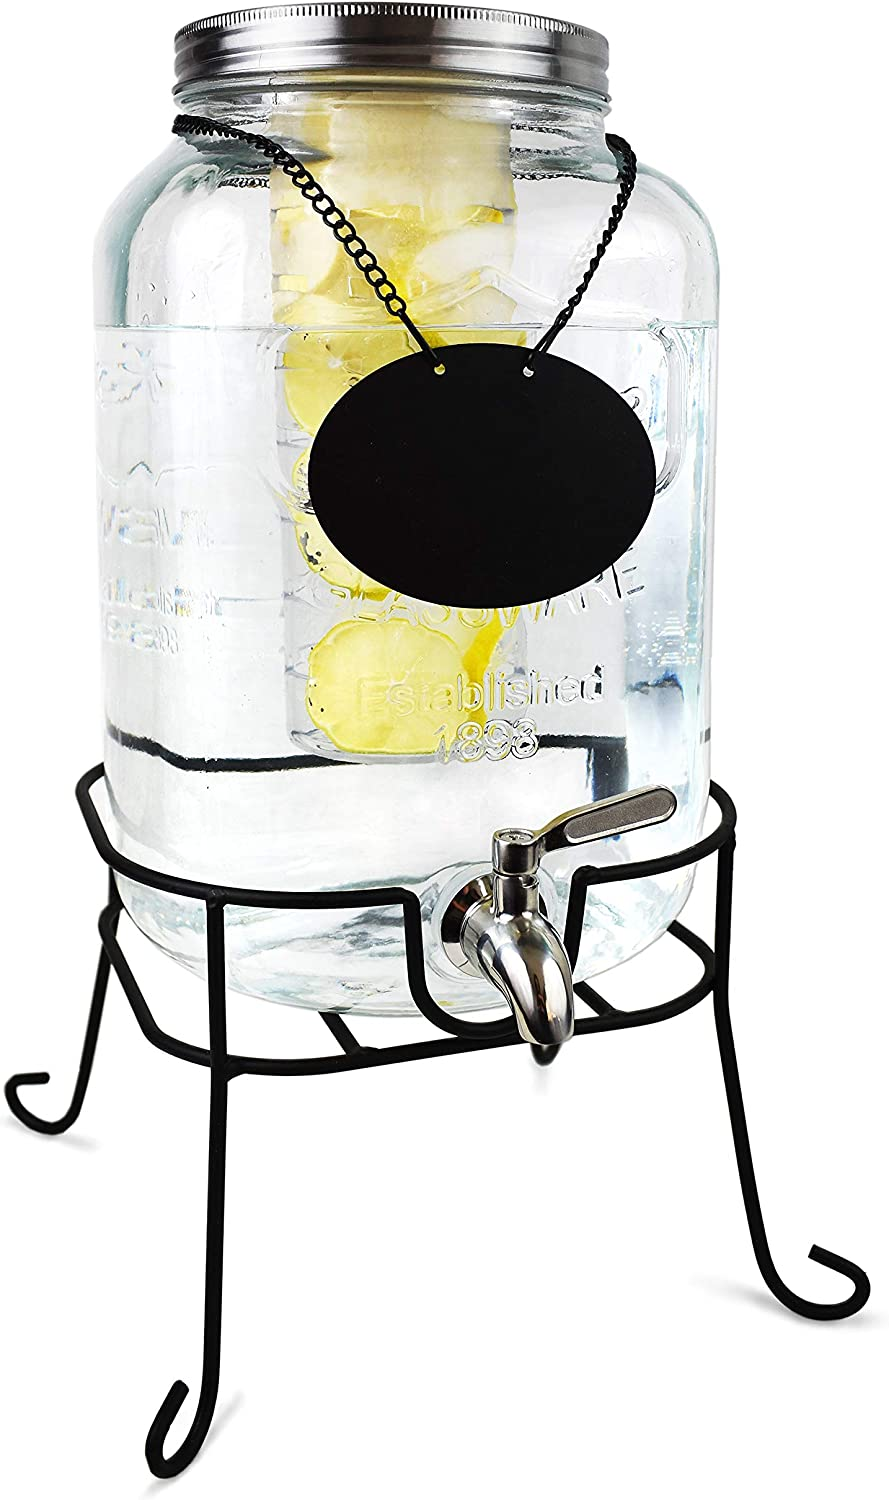 Glass Beverage Dispenser with Fruit Infuser – Ice Cold Drink Container Metal Stand Set Chalkboard Outdoor Server - 1 Gallon Stainless Steel Spigot